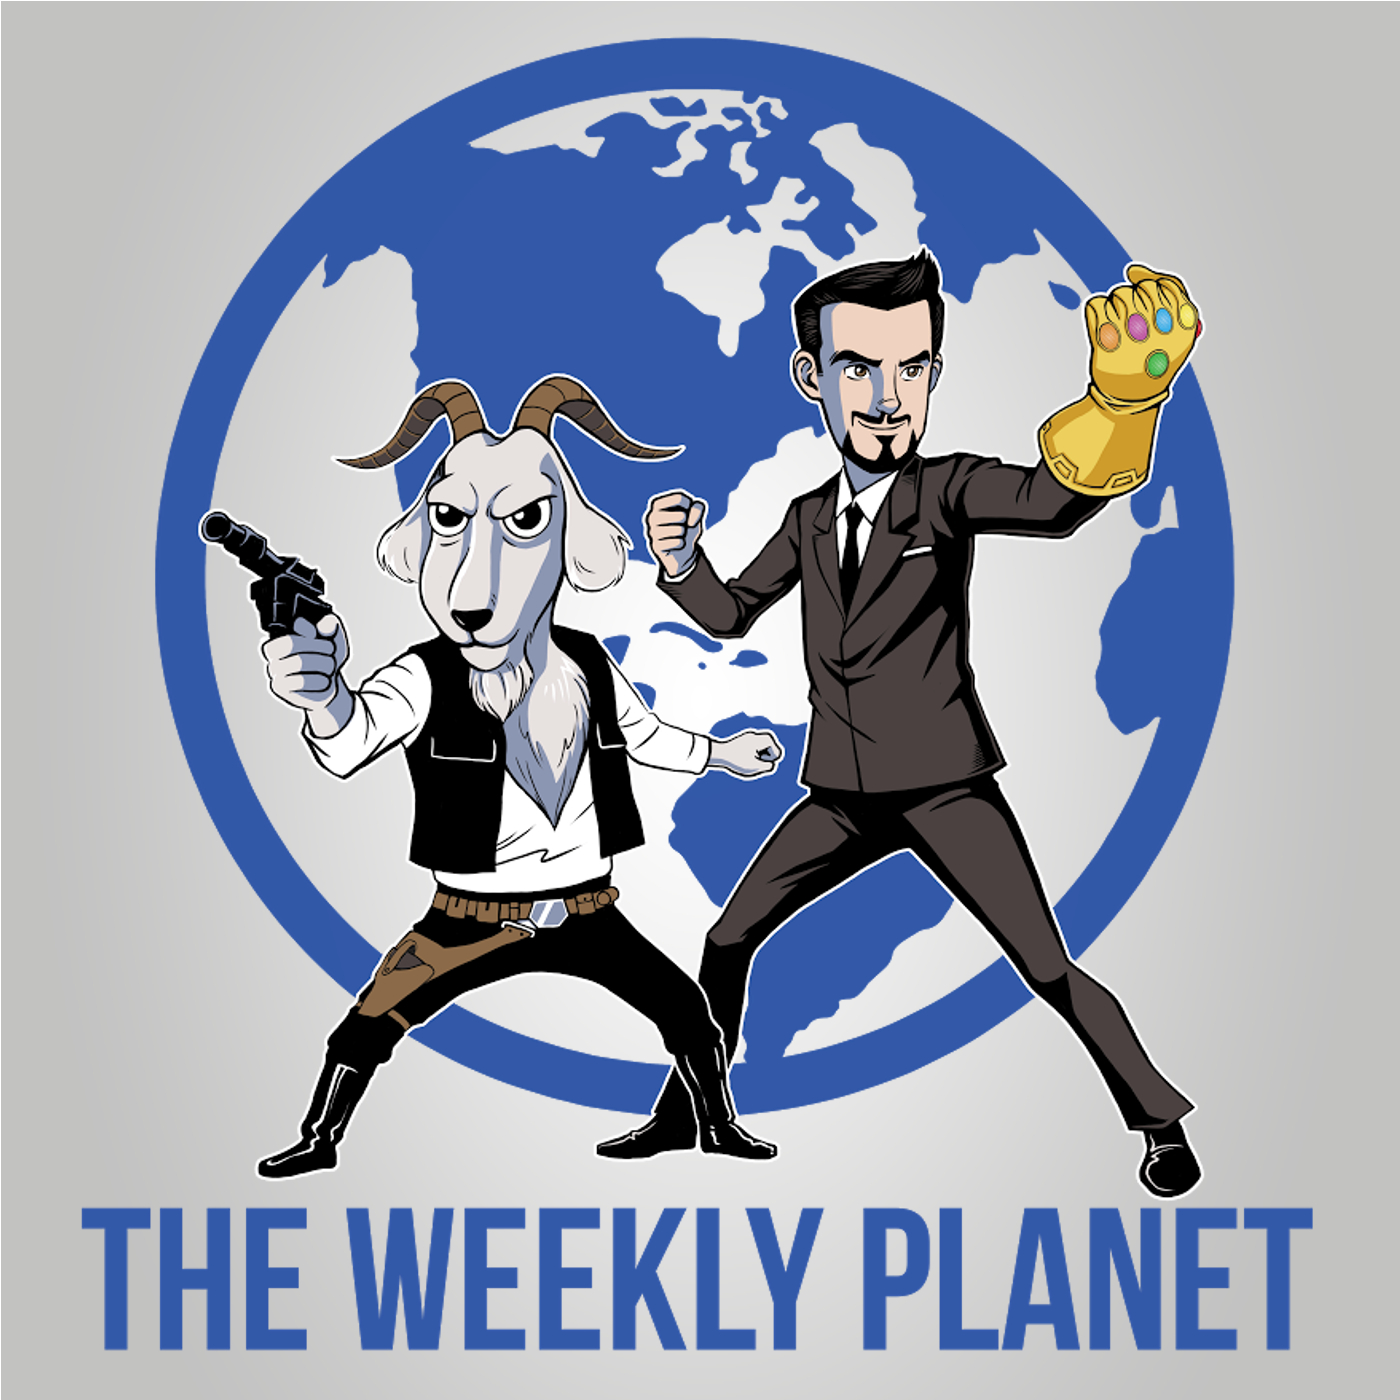 The Weekly Planet logo